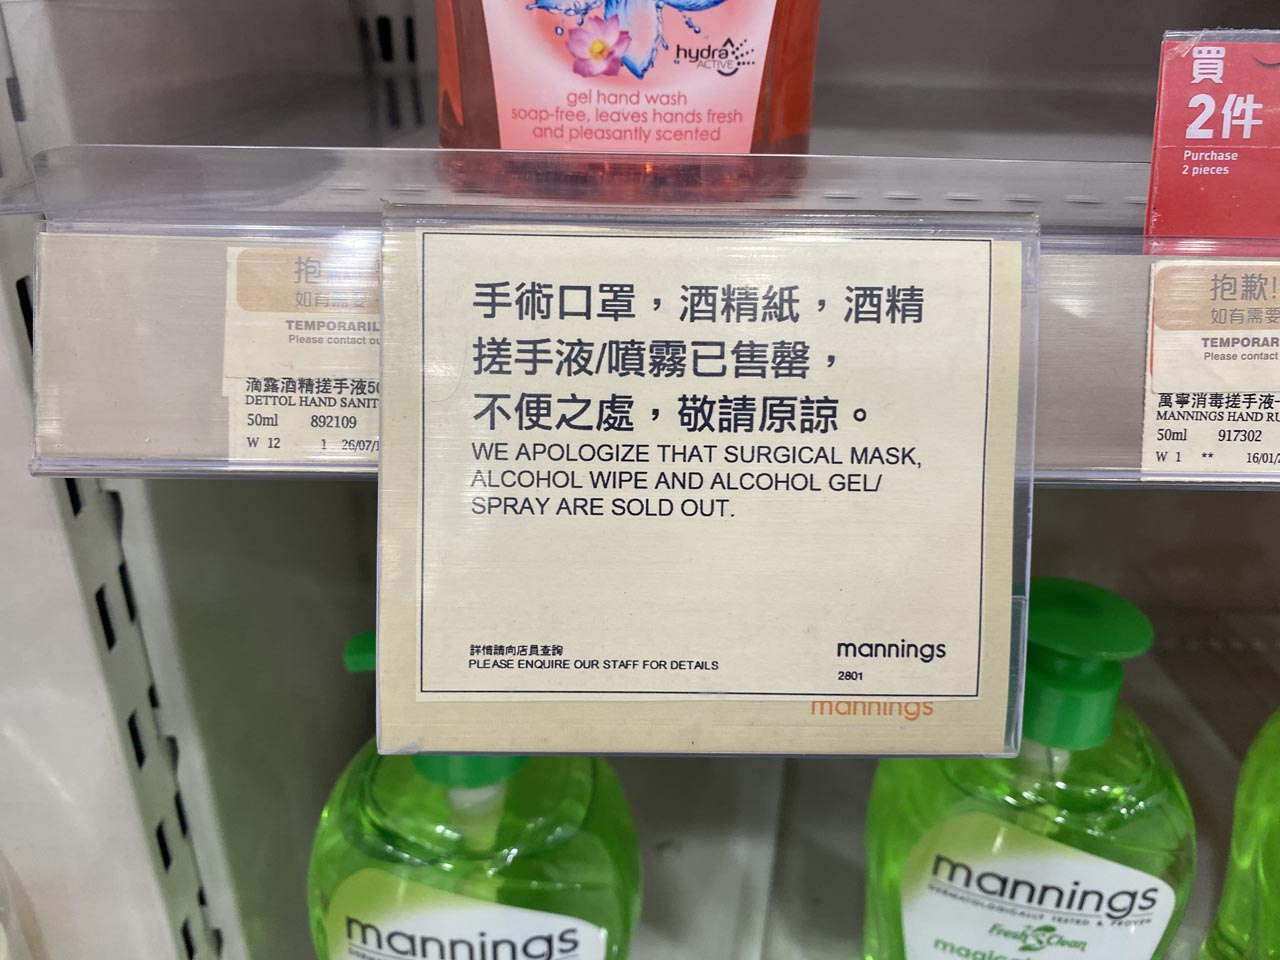 SHORTAGE. Almost all grocery stores in Hong Kong have sold out supplies of surgical masks, alcohol wipes and alcohol gel. Photo by Tommy Walker